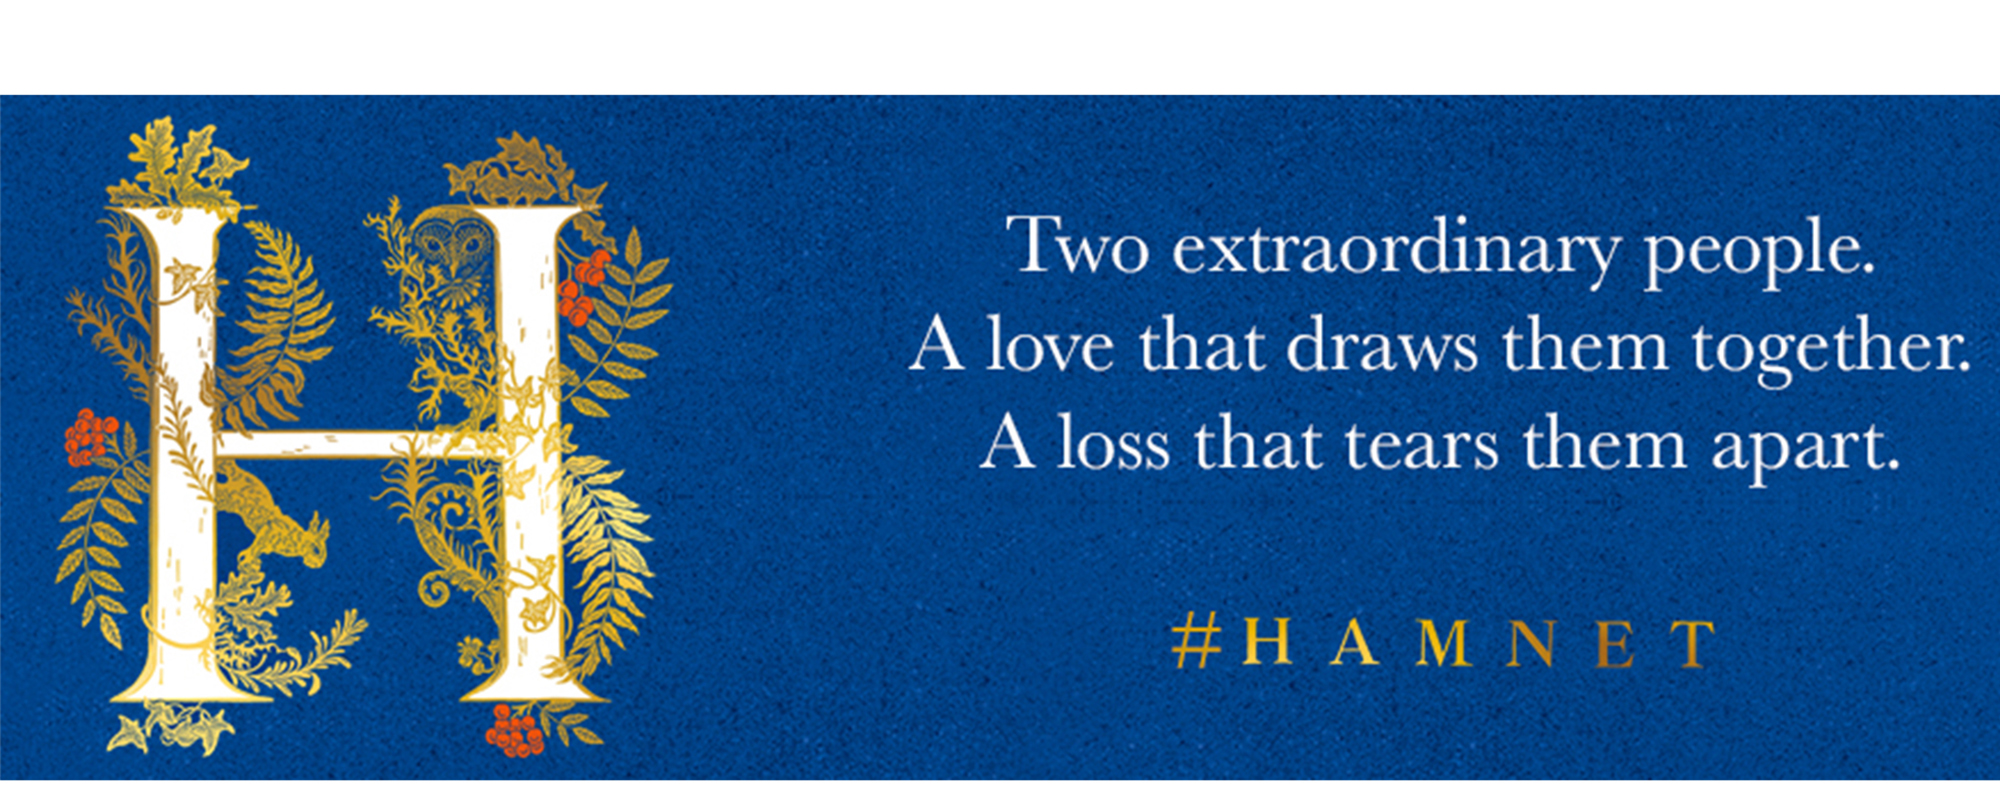 Hamnet book cover which is a white H with gold leaves and red berries wrapped around it on a blue background alongside the quote 'Two extraordinary people. A love that draws them together. A loss that tears them apart' #HAMNET